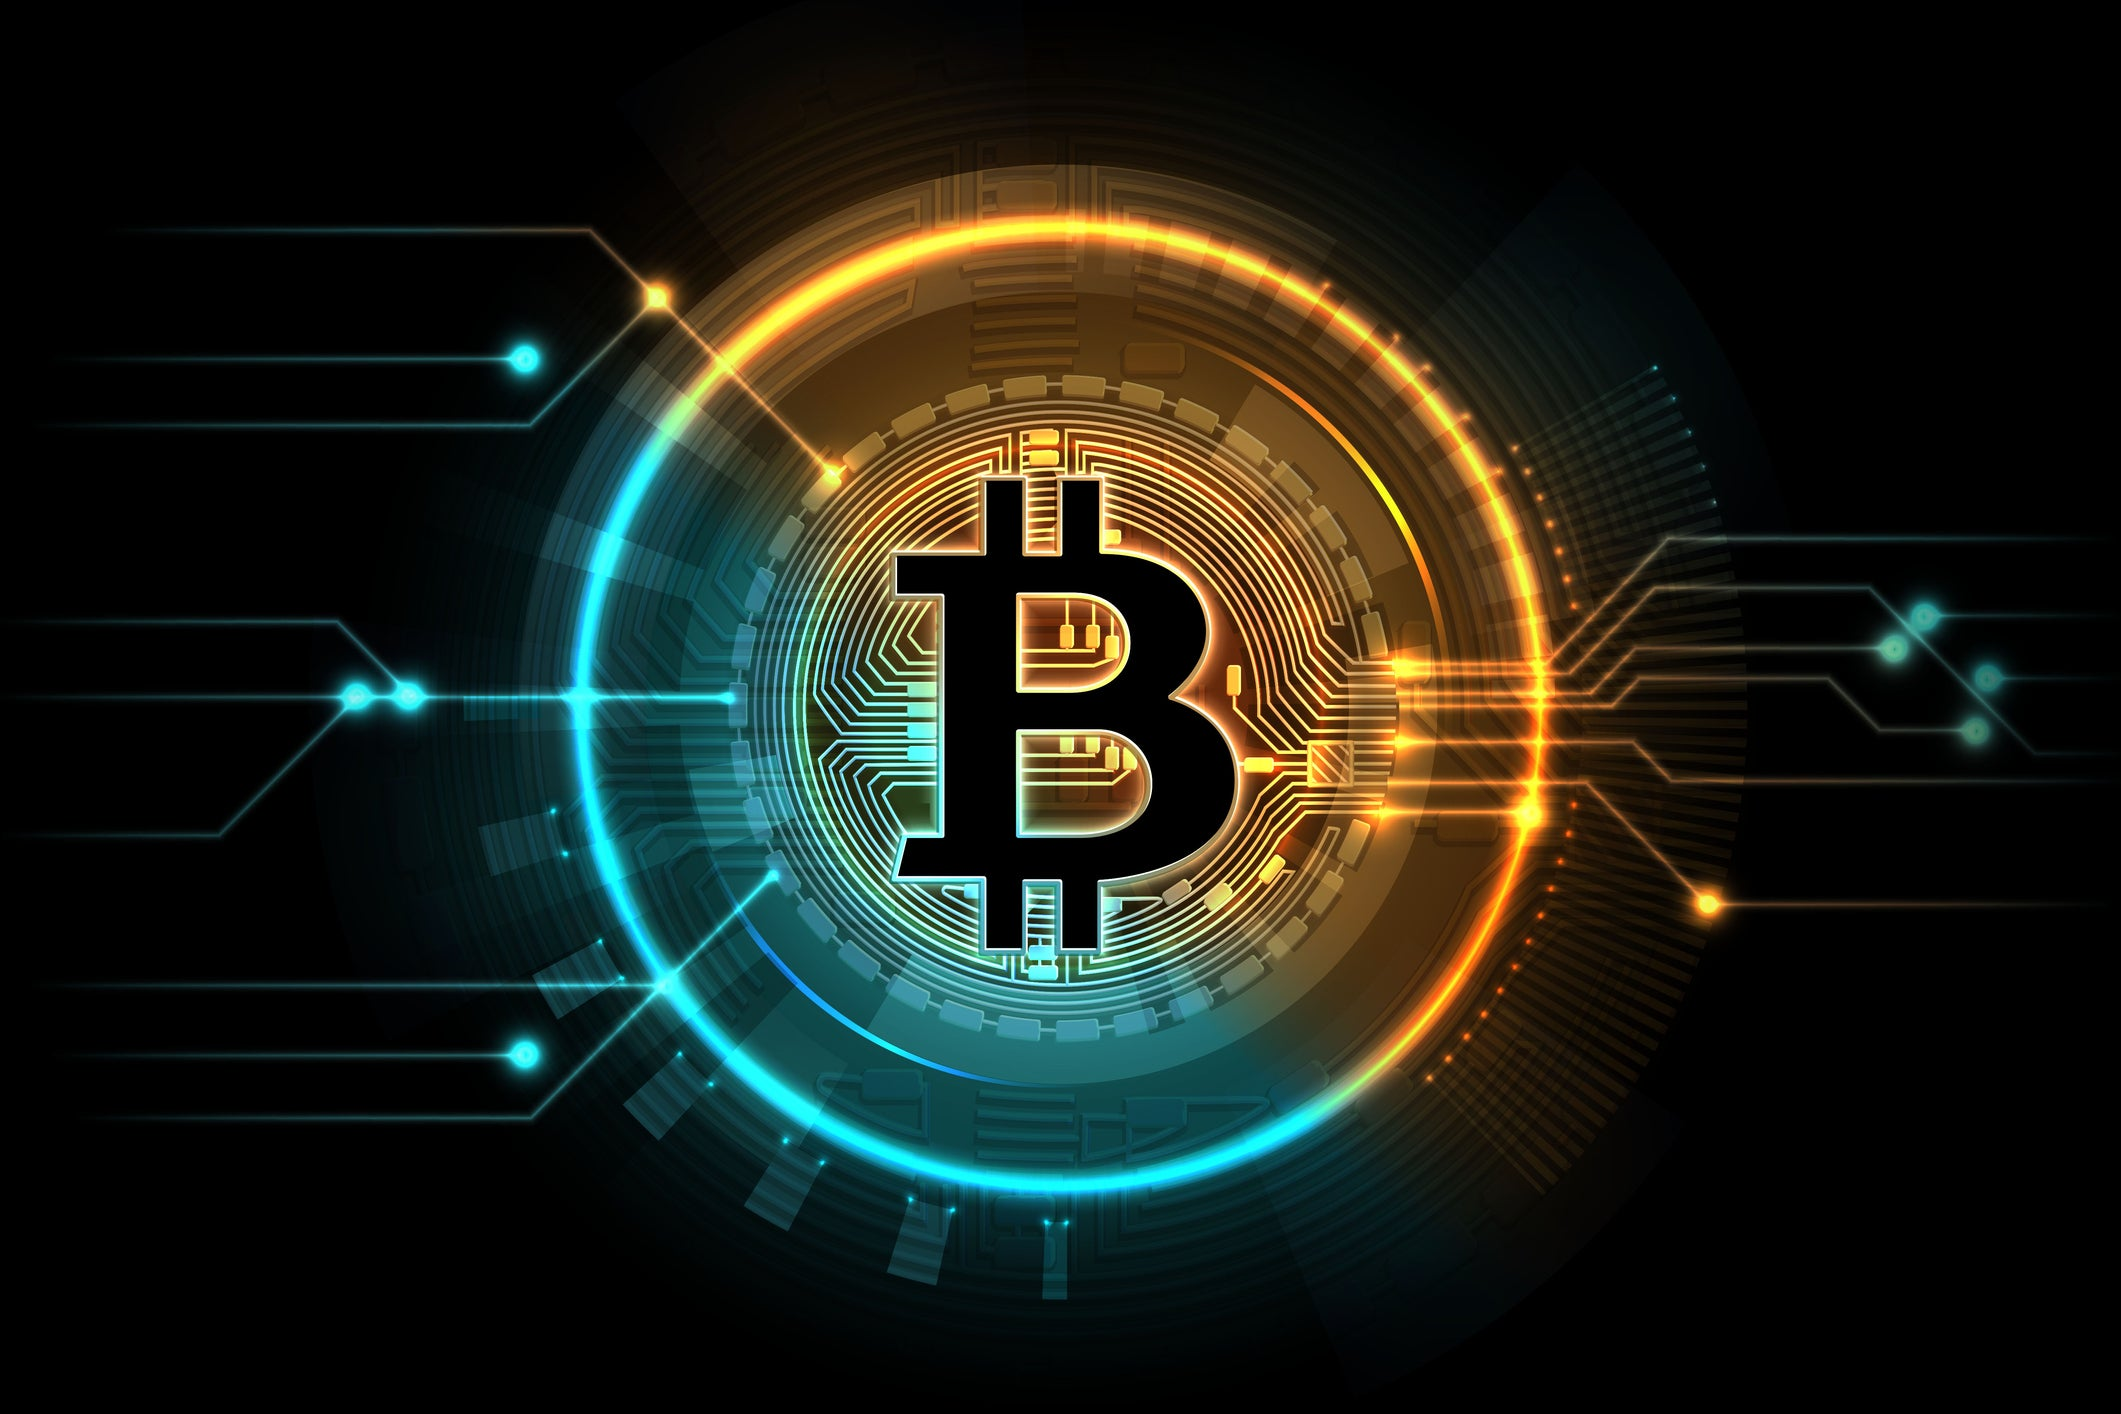 Bitcoin Represents Both: The Future and The Past